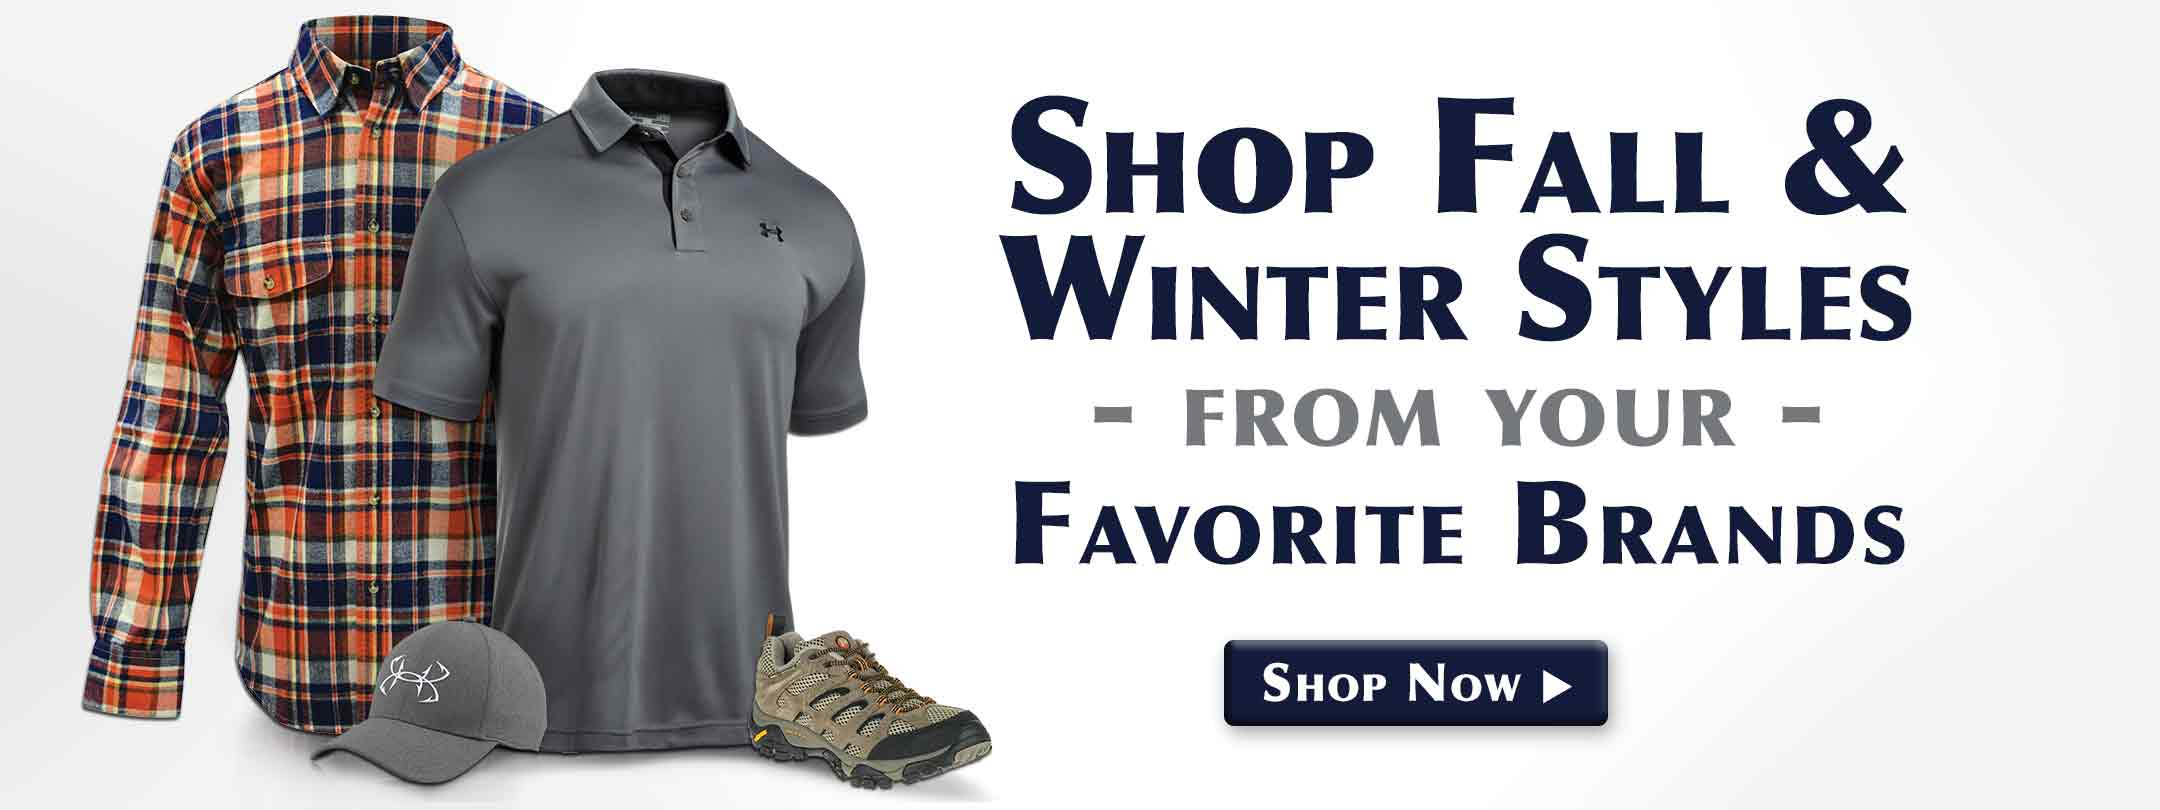 Shop Fall & Winter Styles from Your Favorite Brands